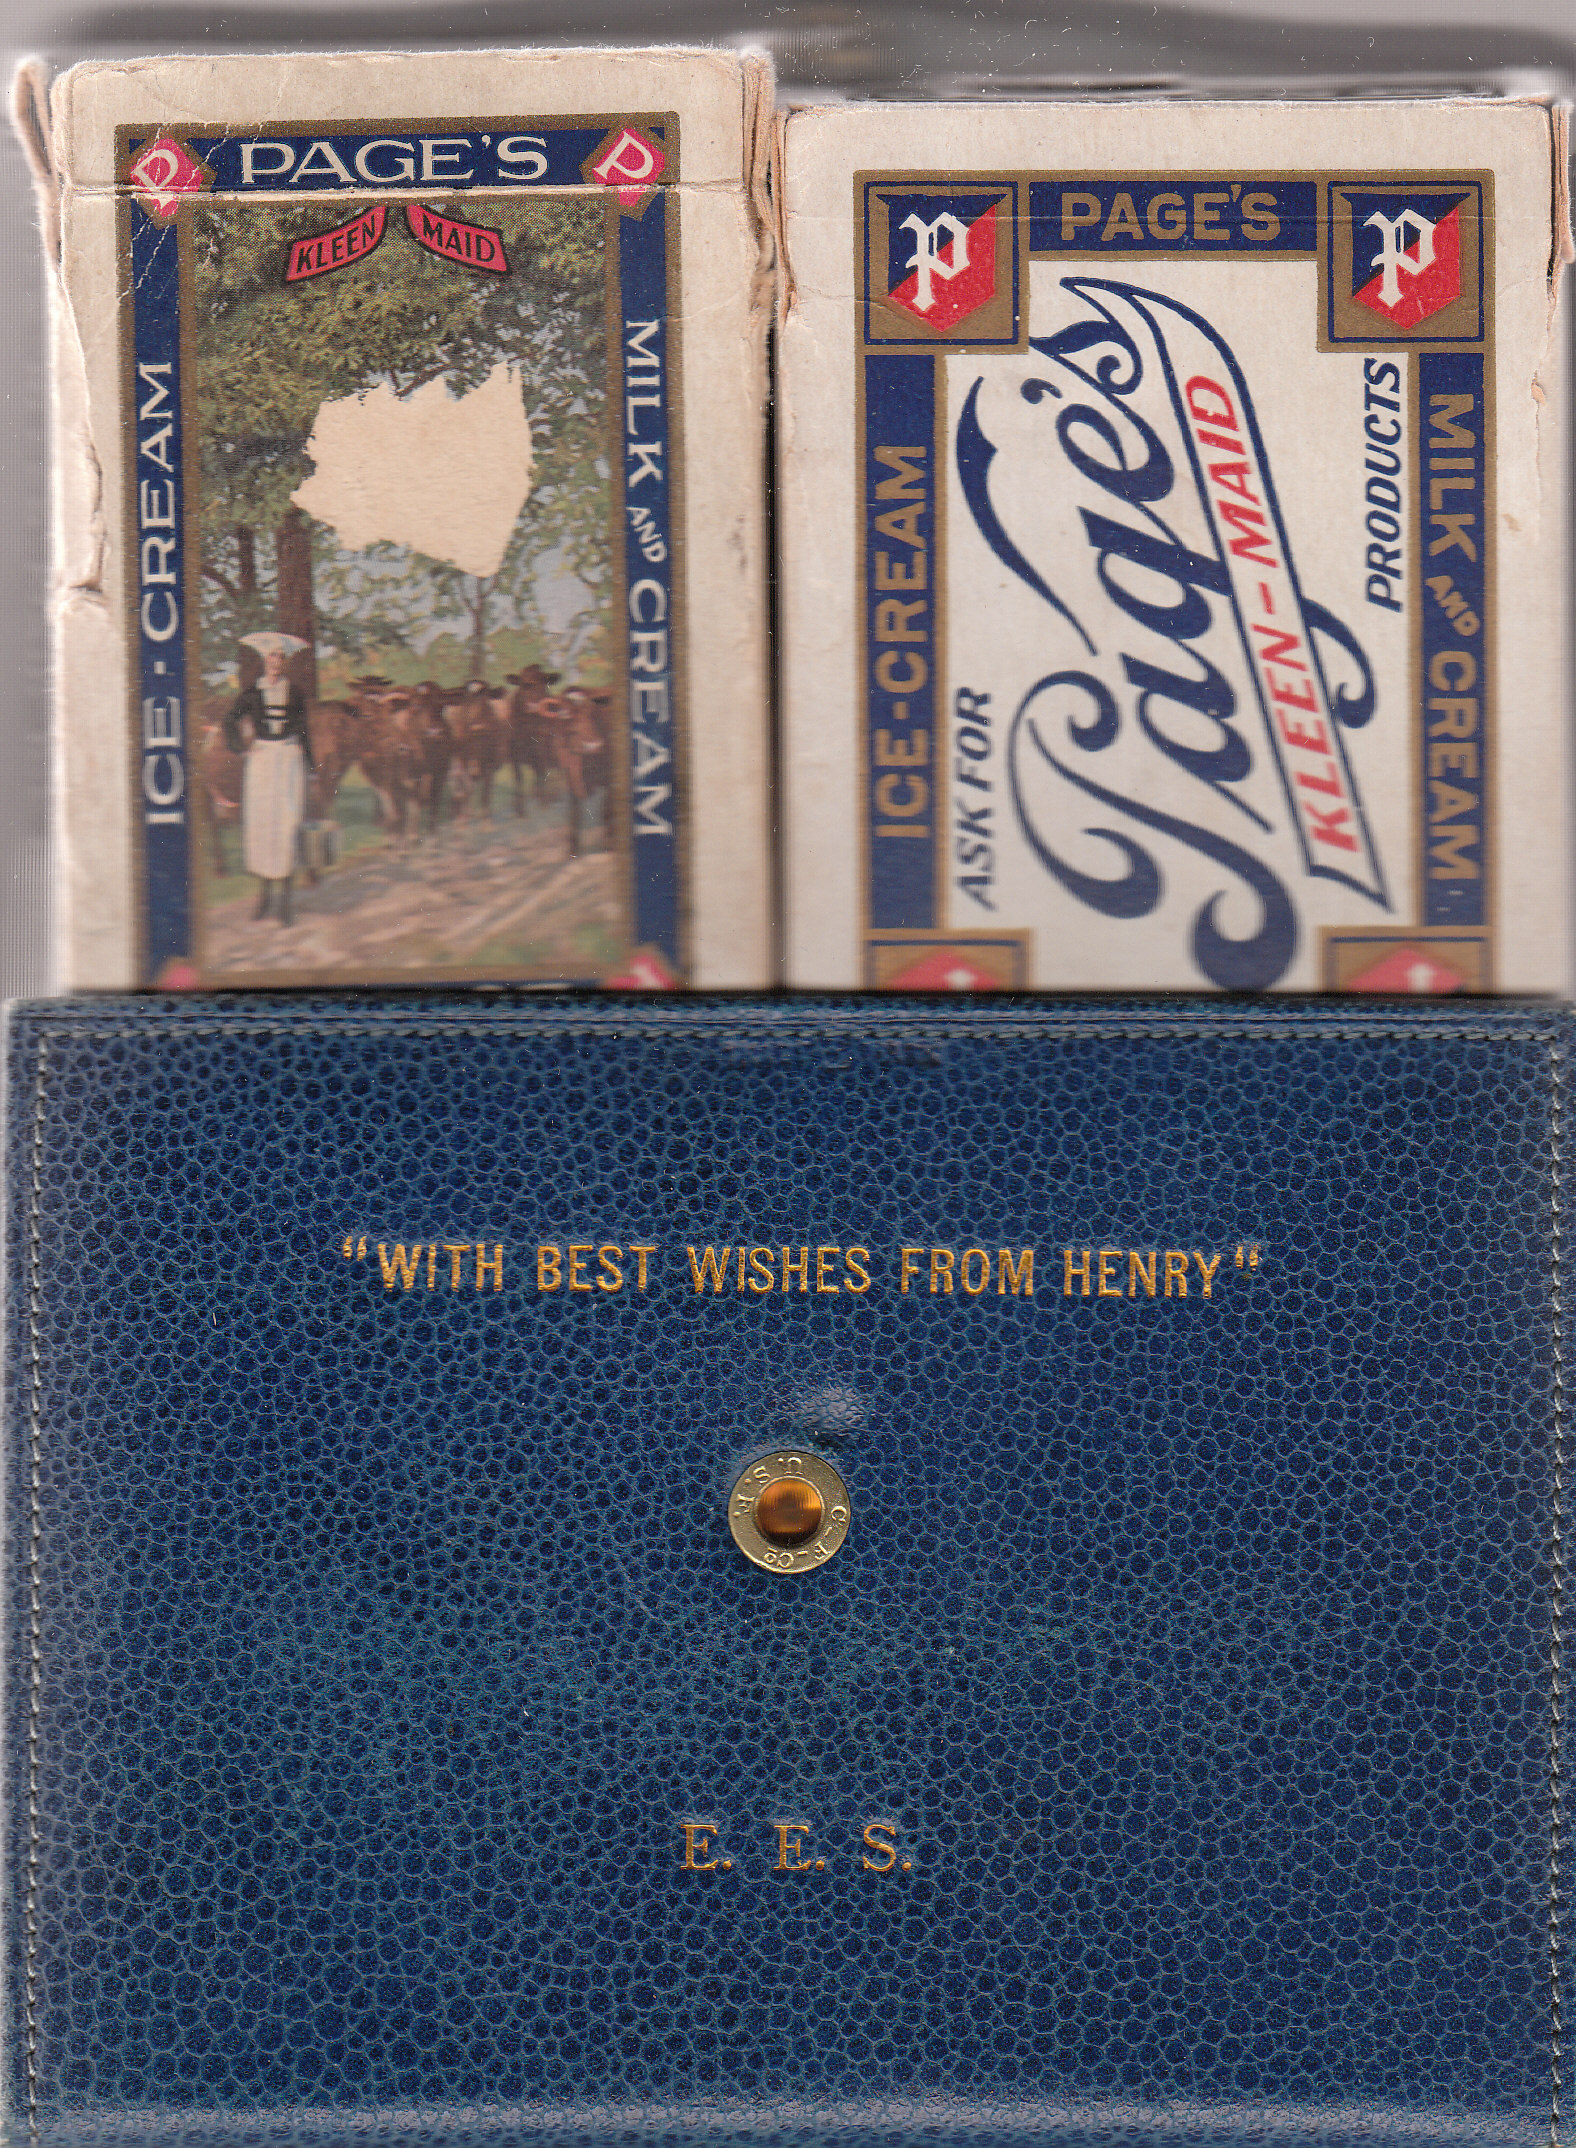 Page Dairy Playing Cards - Blue Case